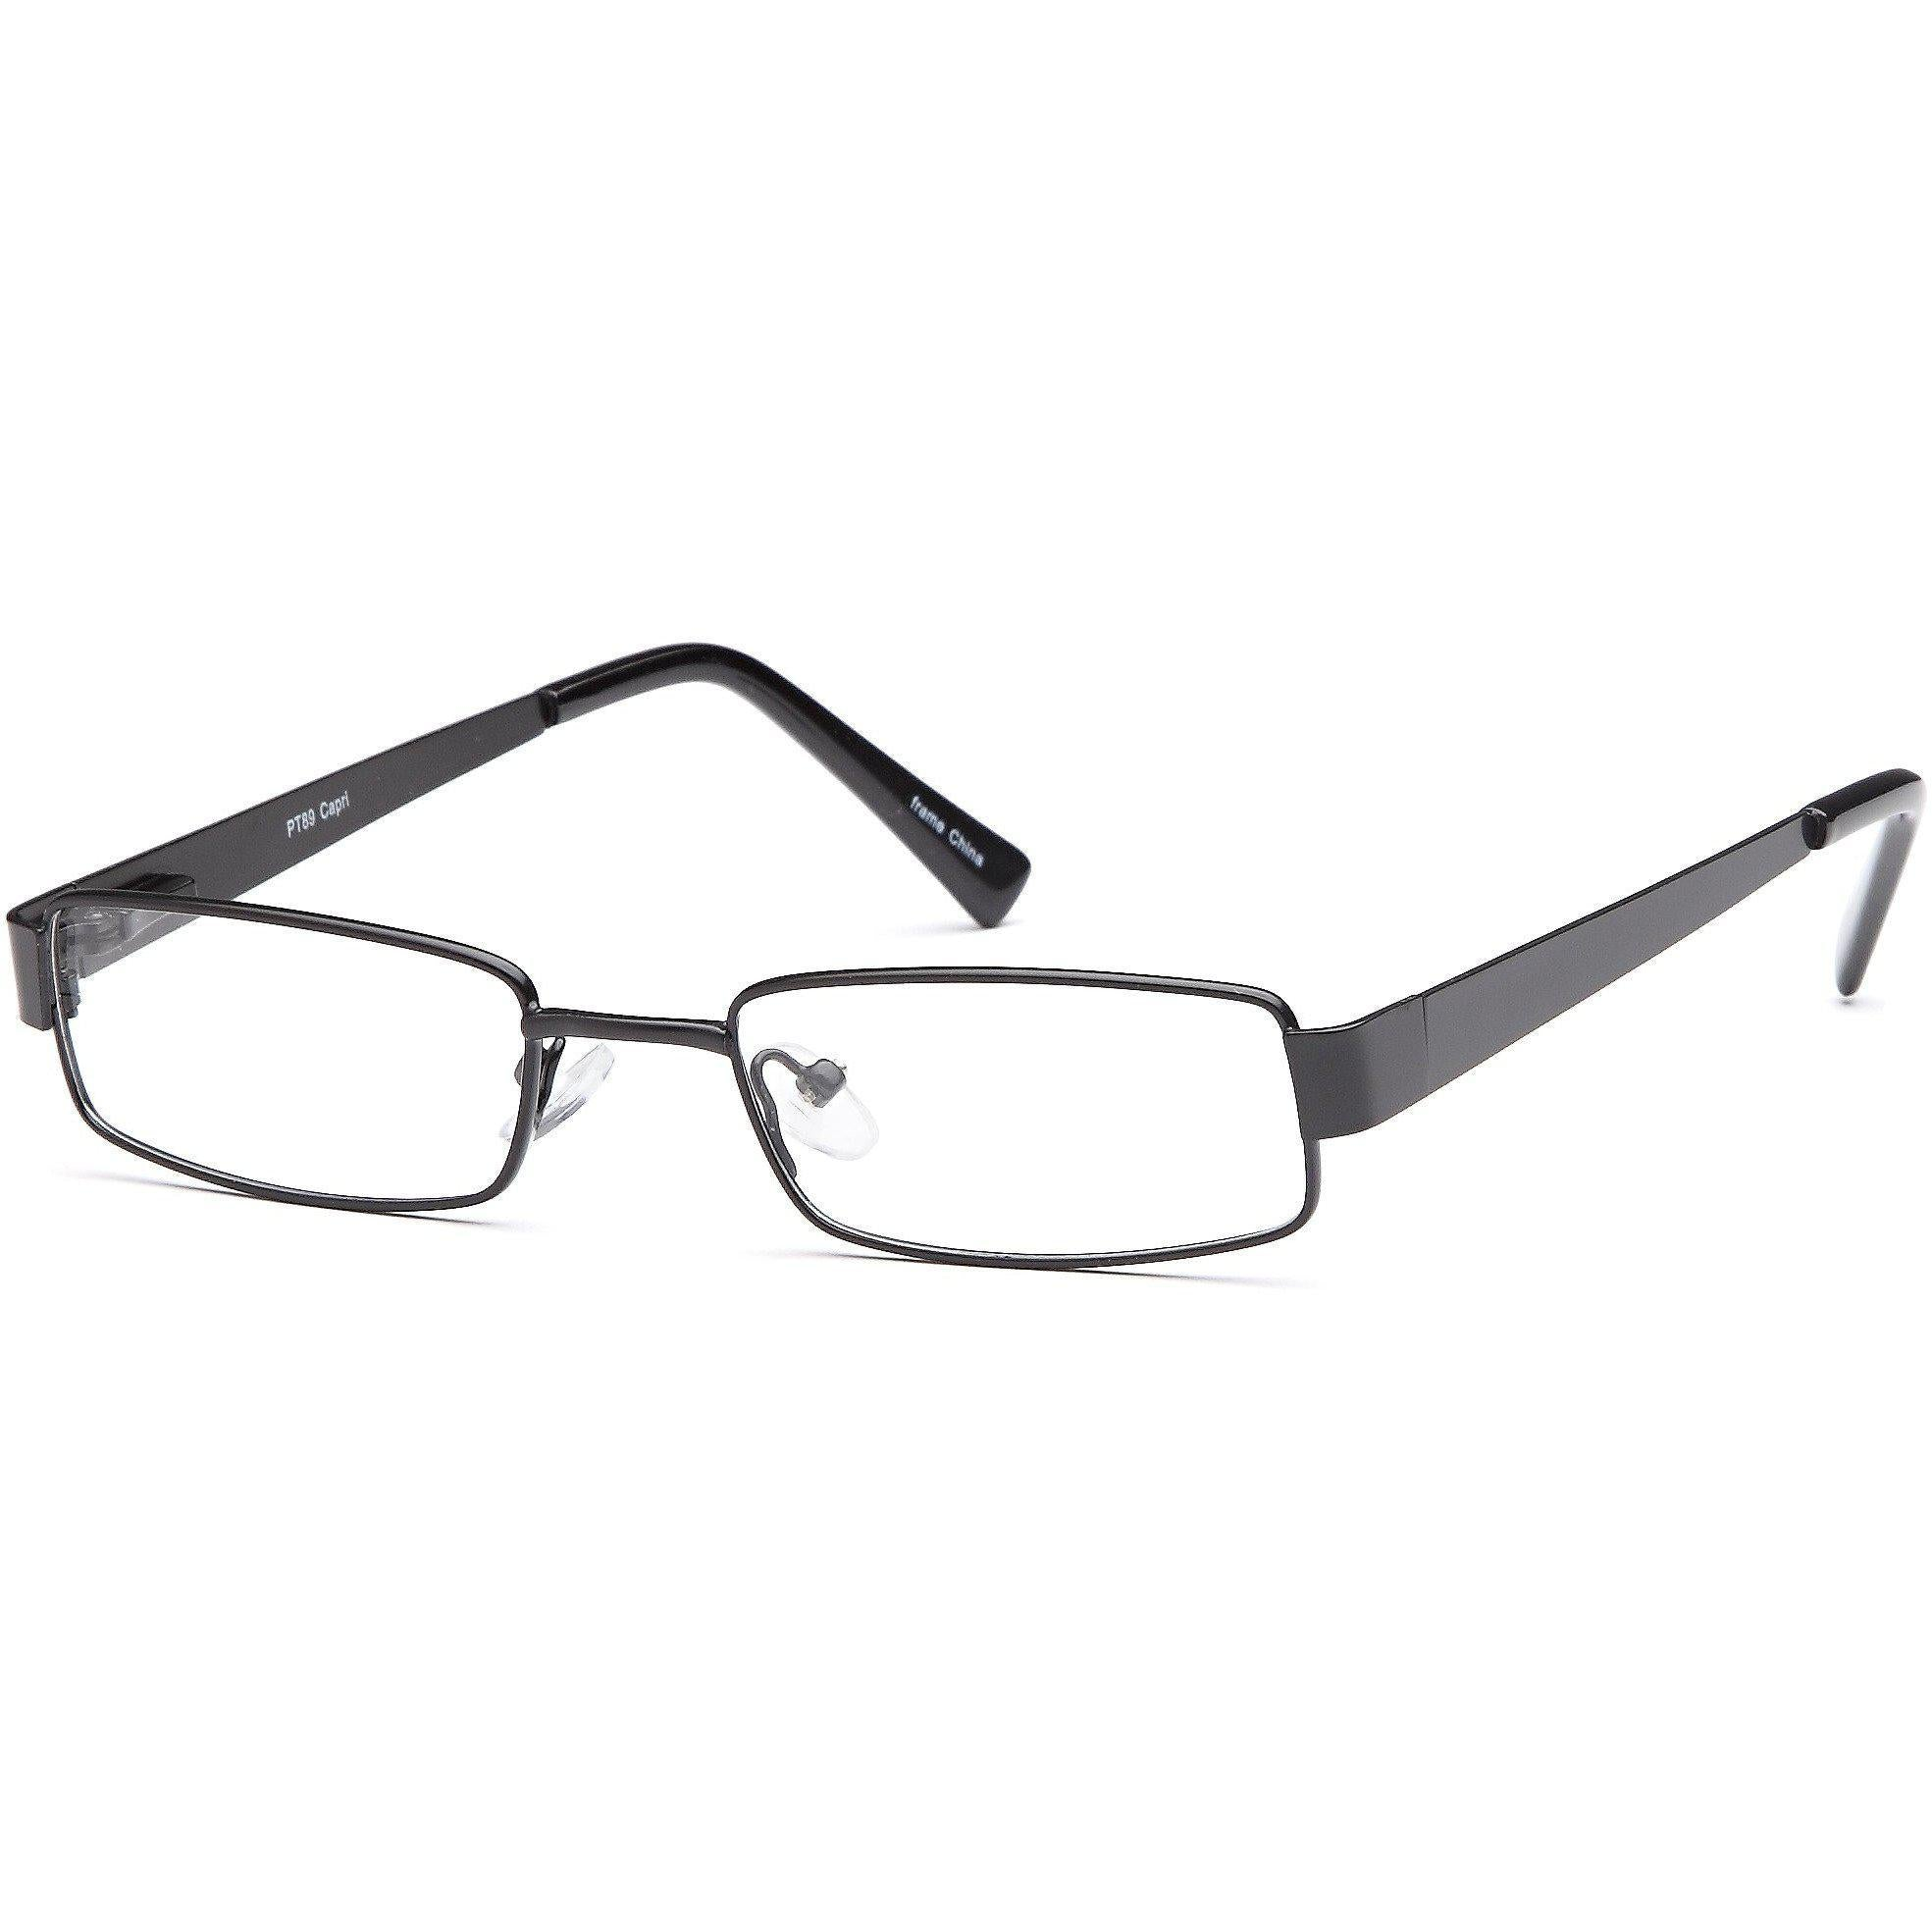 Appletree Prescription Glasses PT 89 Eyeglasses Frame